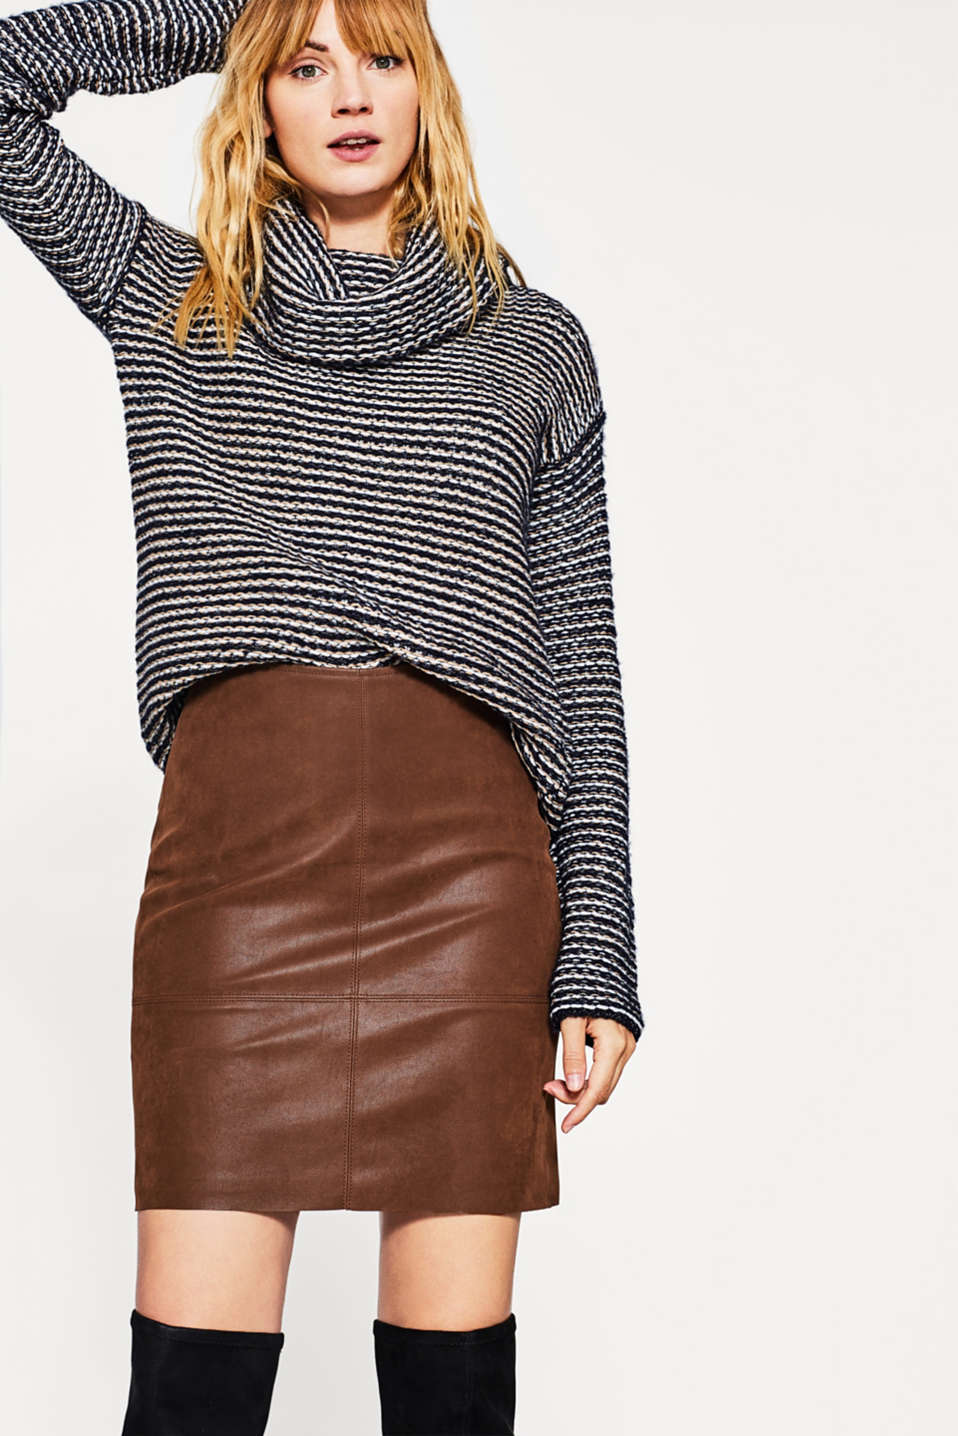 Esprit - Faux leather mini skirt